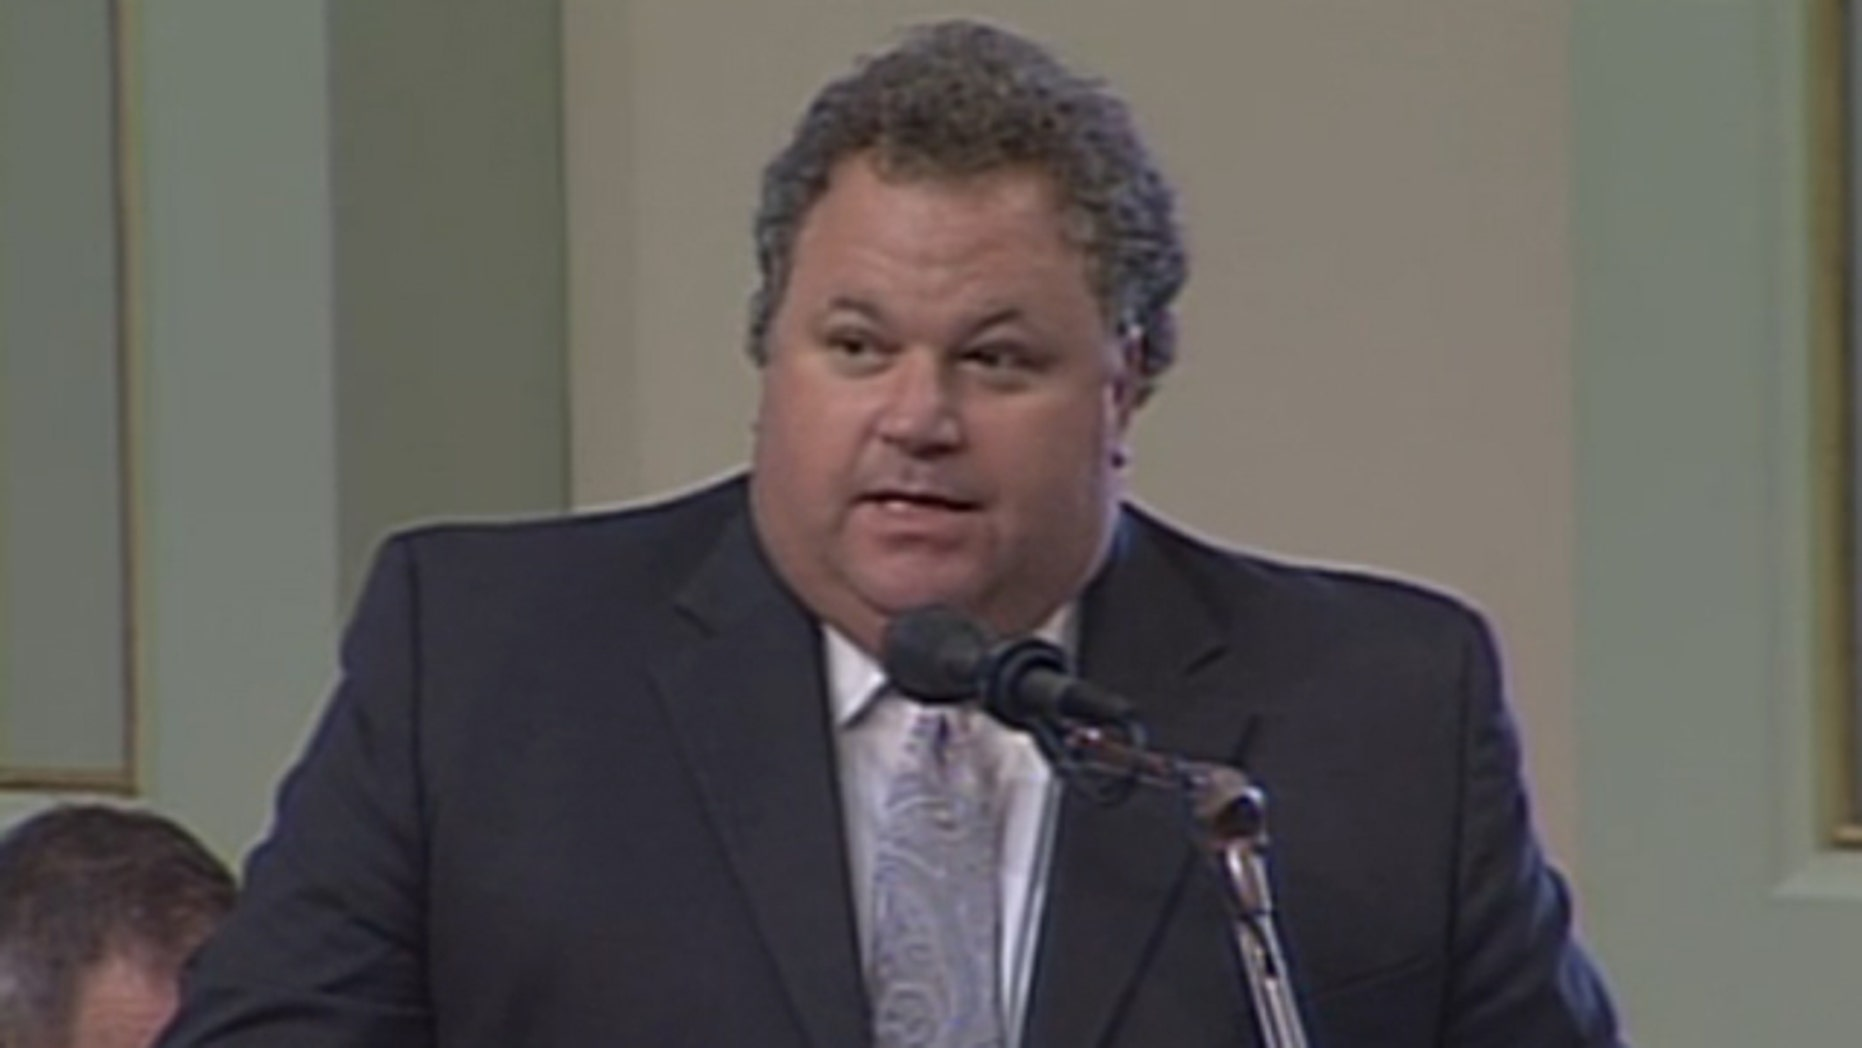 Shown here is California Assemblyman Jeff Miller.